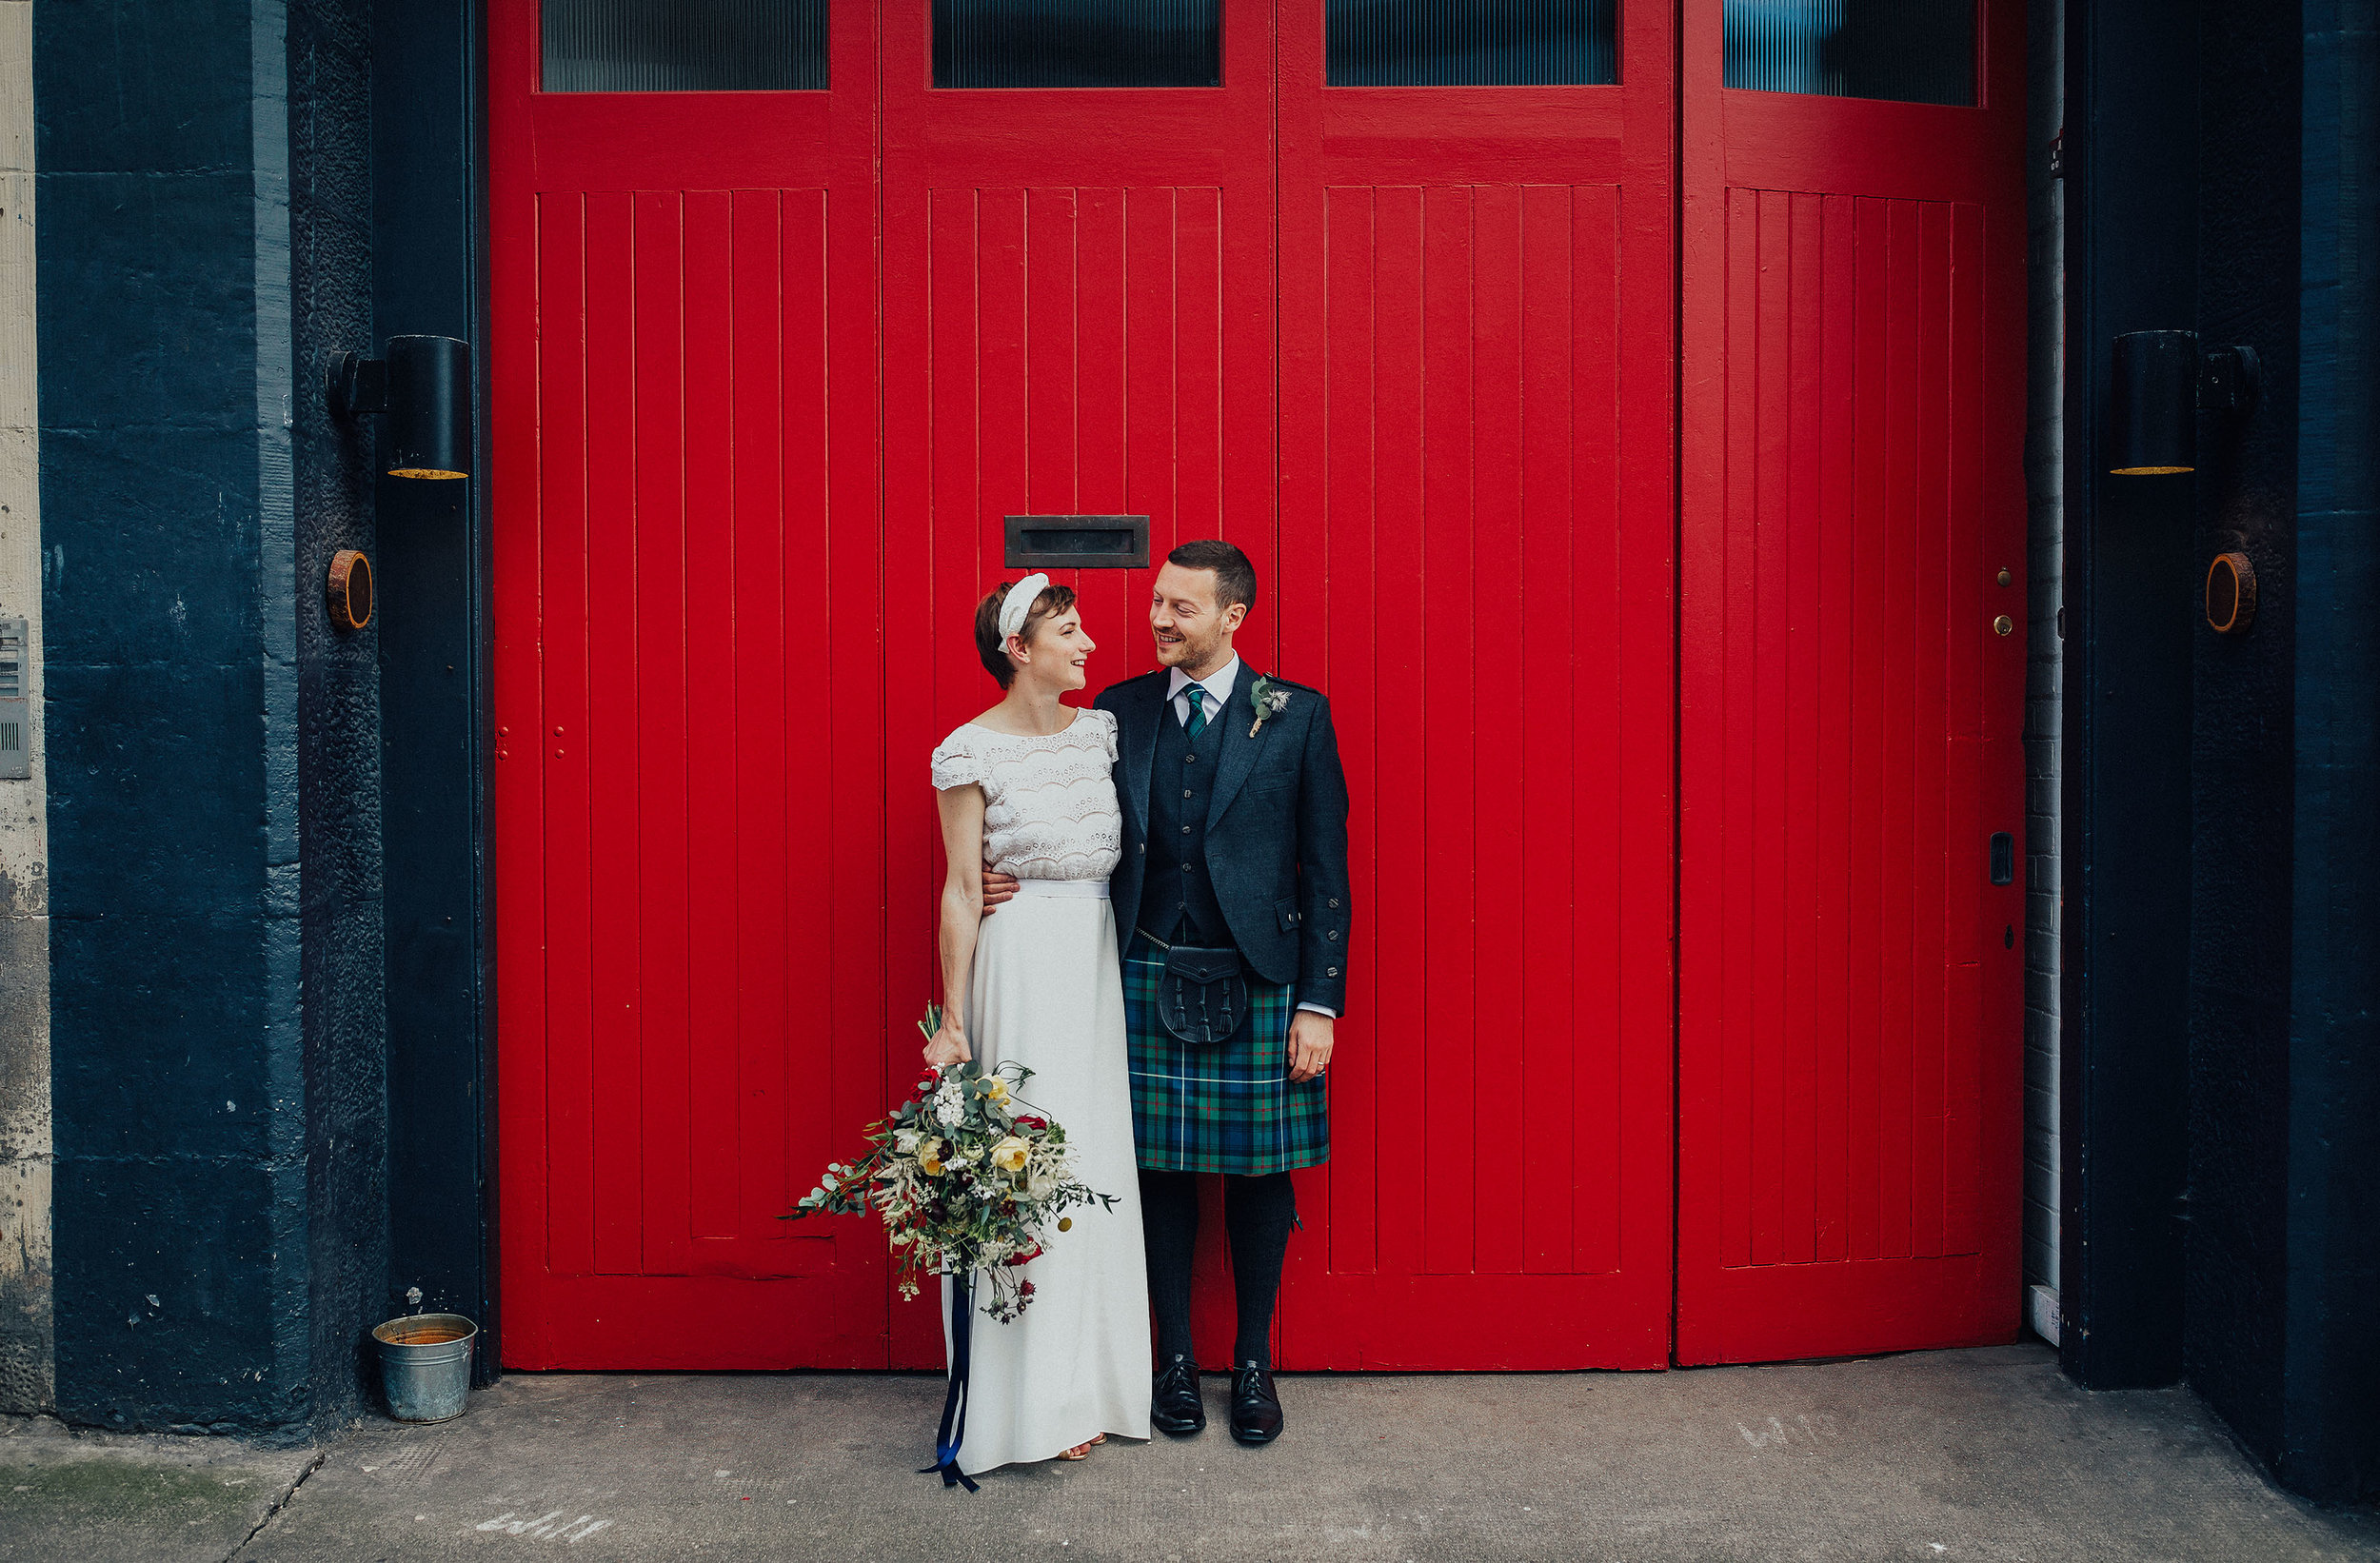 TIMBERYARD_EDINBURGH_WEDDING_PJ_PHILLIPS_PHOTOGRAPHY_176.jpg